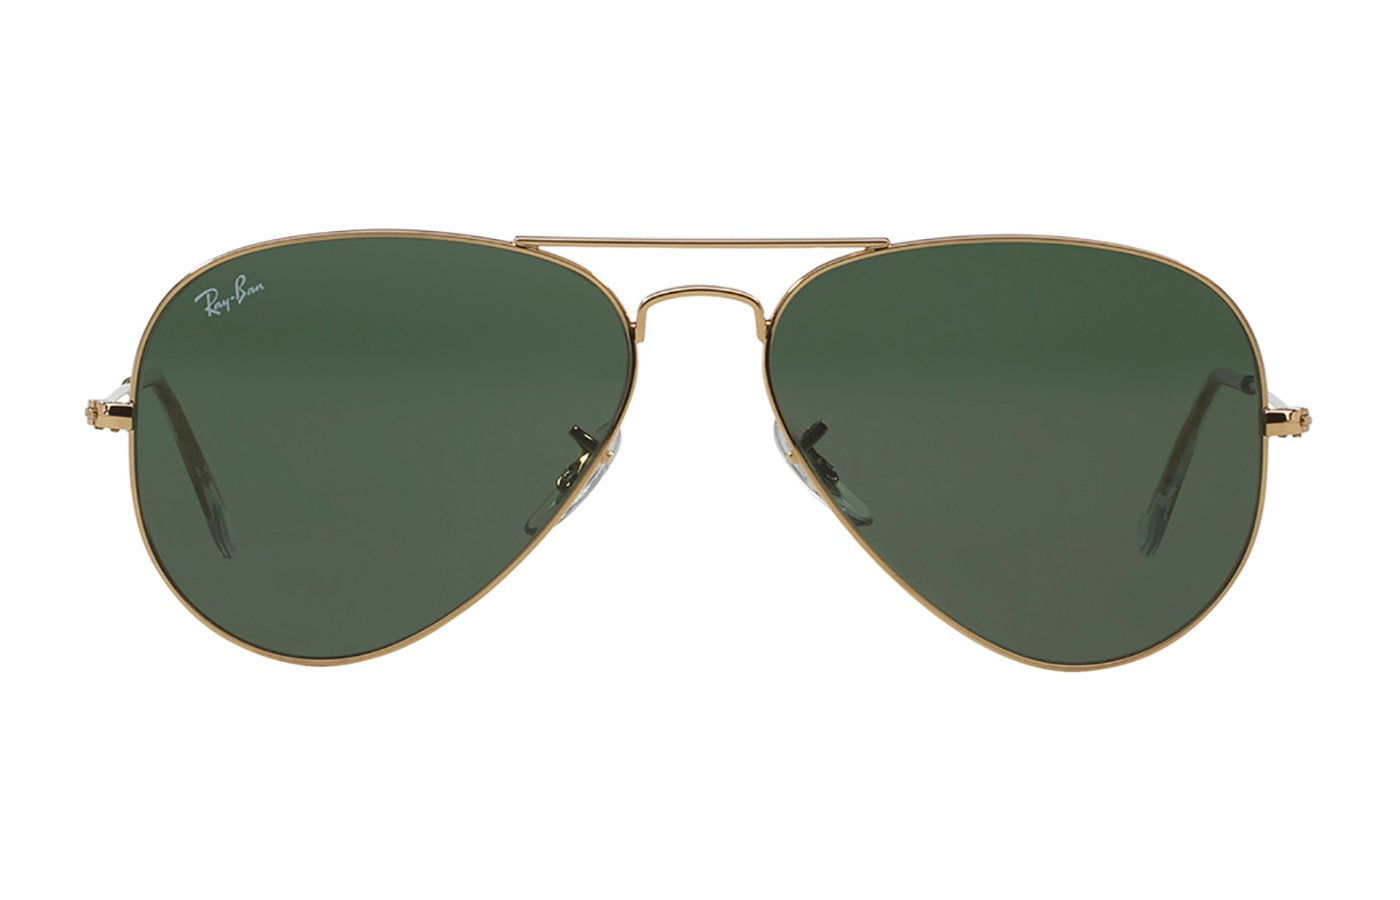 RAY-BAN AVIATOR LARGE METAL 0RB3025 58 L0205 GOLD